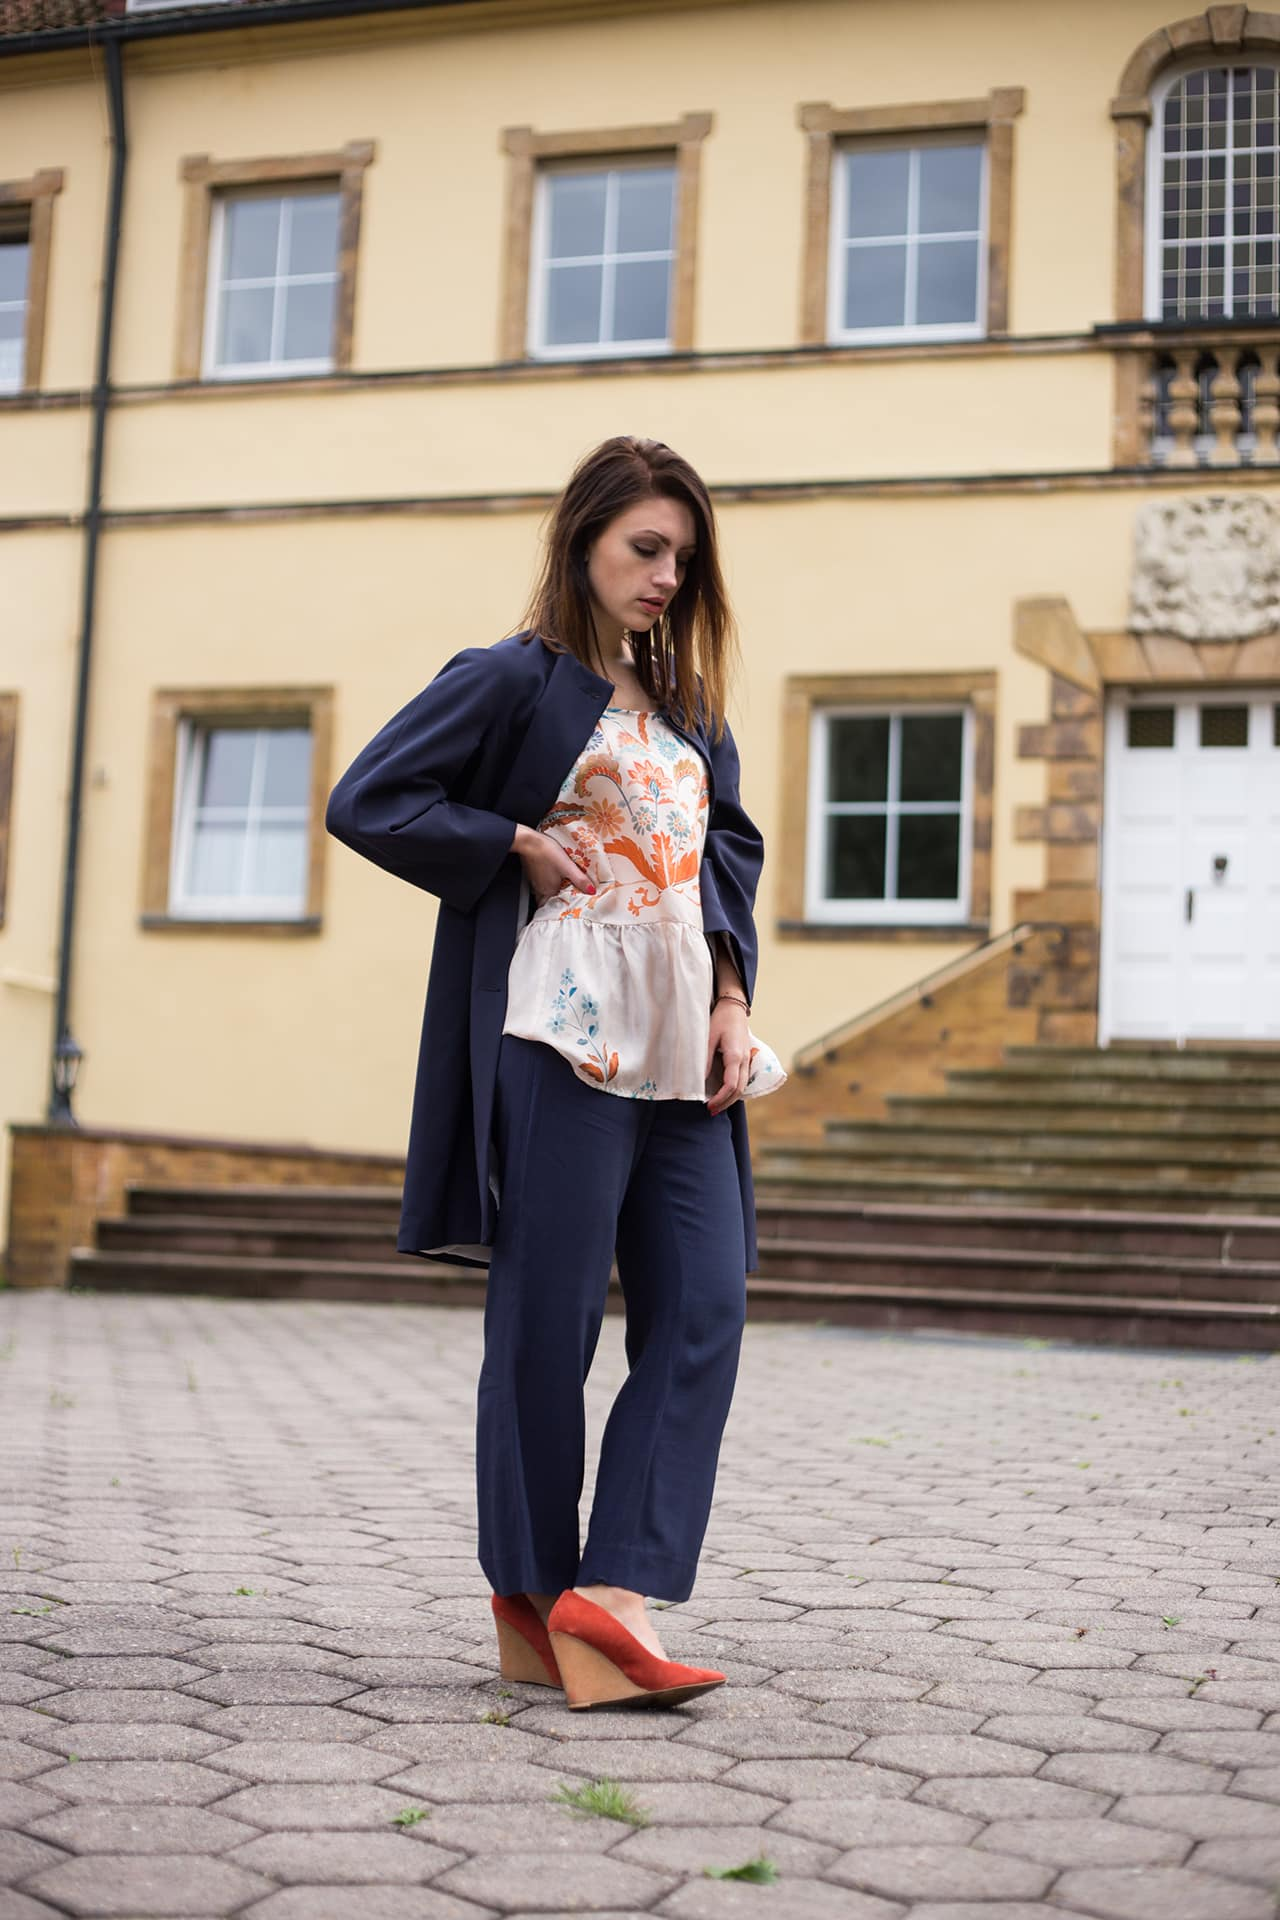 Luftig leichter Look aus Seide Pumps Orange Zara